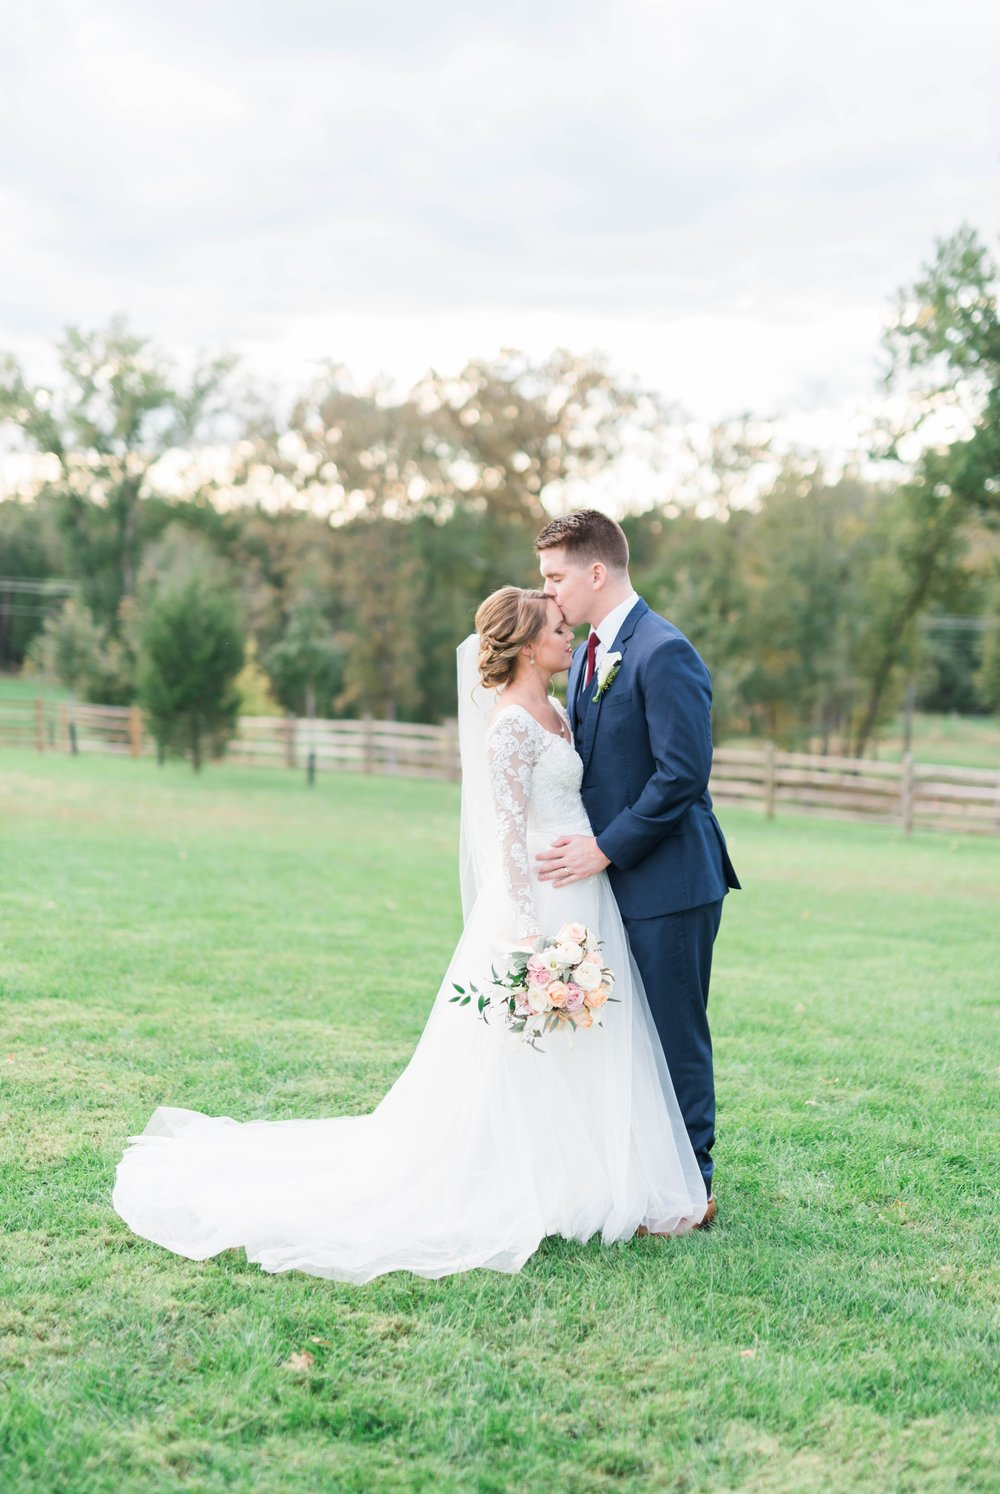 GrantElizabeth_wineryatbullrun_DCwedding_Virginiaweddingphotographer 10.jpg